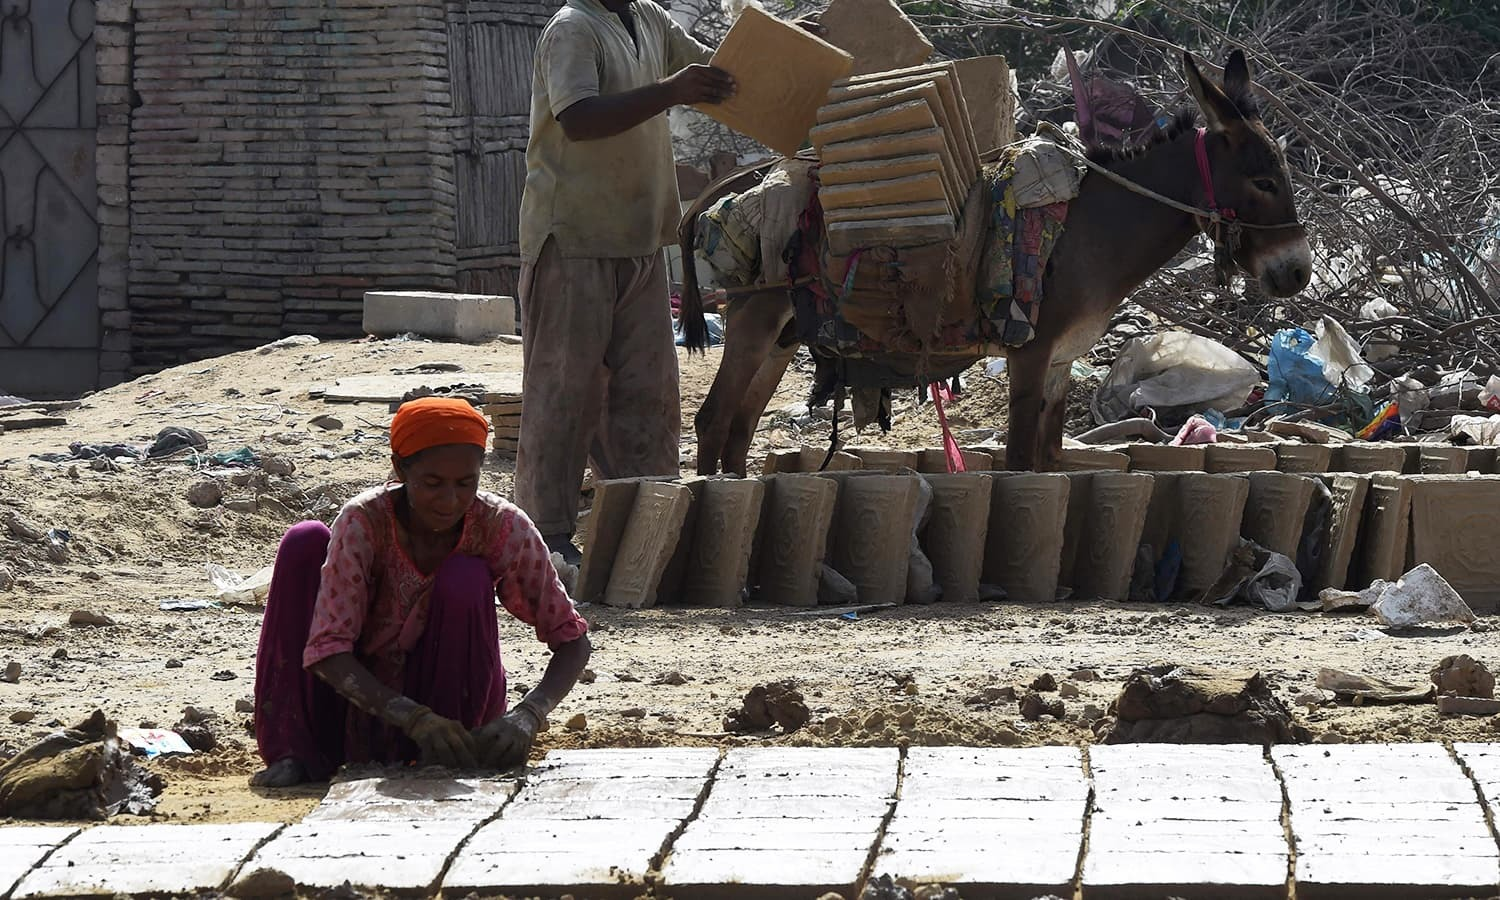 Labourers make bricks at a factory in Karachi. -AFP